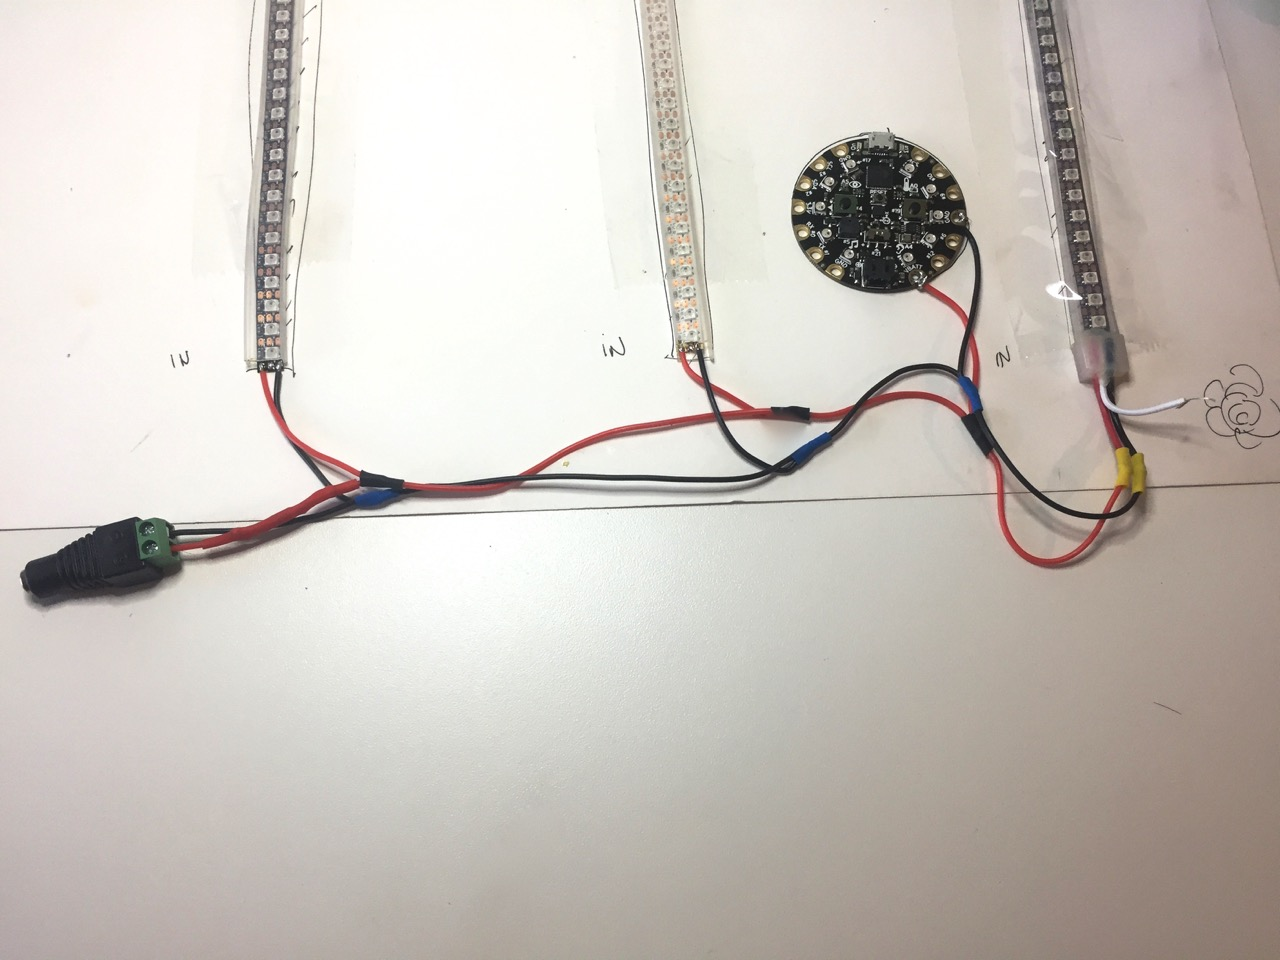 led_strips_12_powerwires_connected.jpg